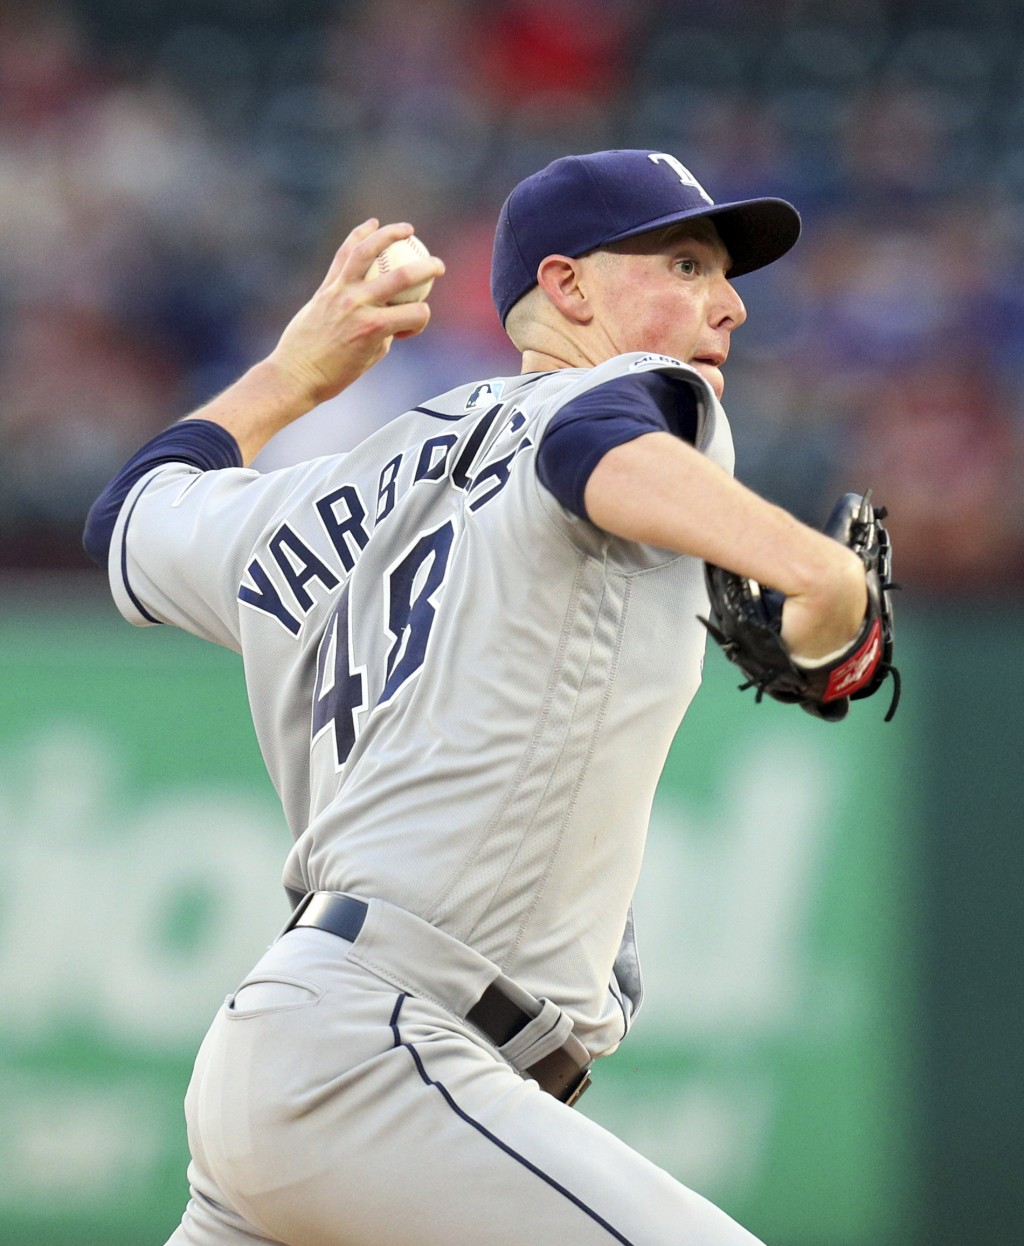 Tampa Bay Rays starter Ryan Yarbrough delivers a pitch during the first inning against the Texas Rangers in a baseball game Tuesday, Sept. 10, 2019, i